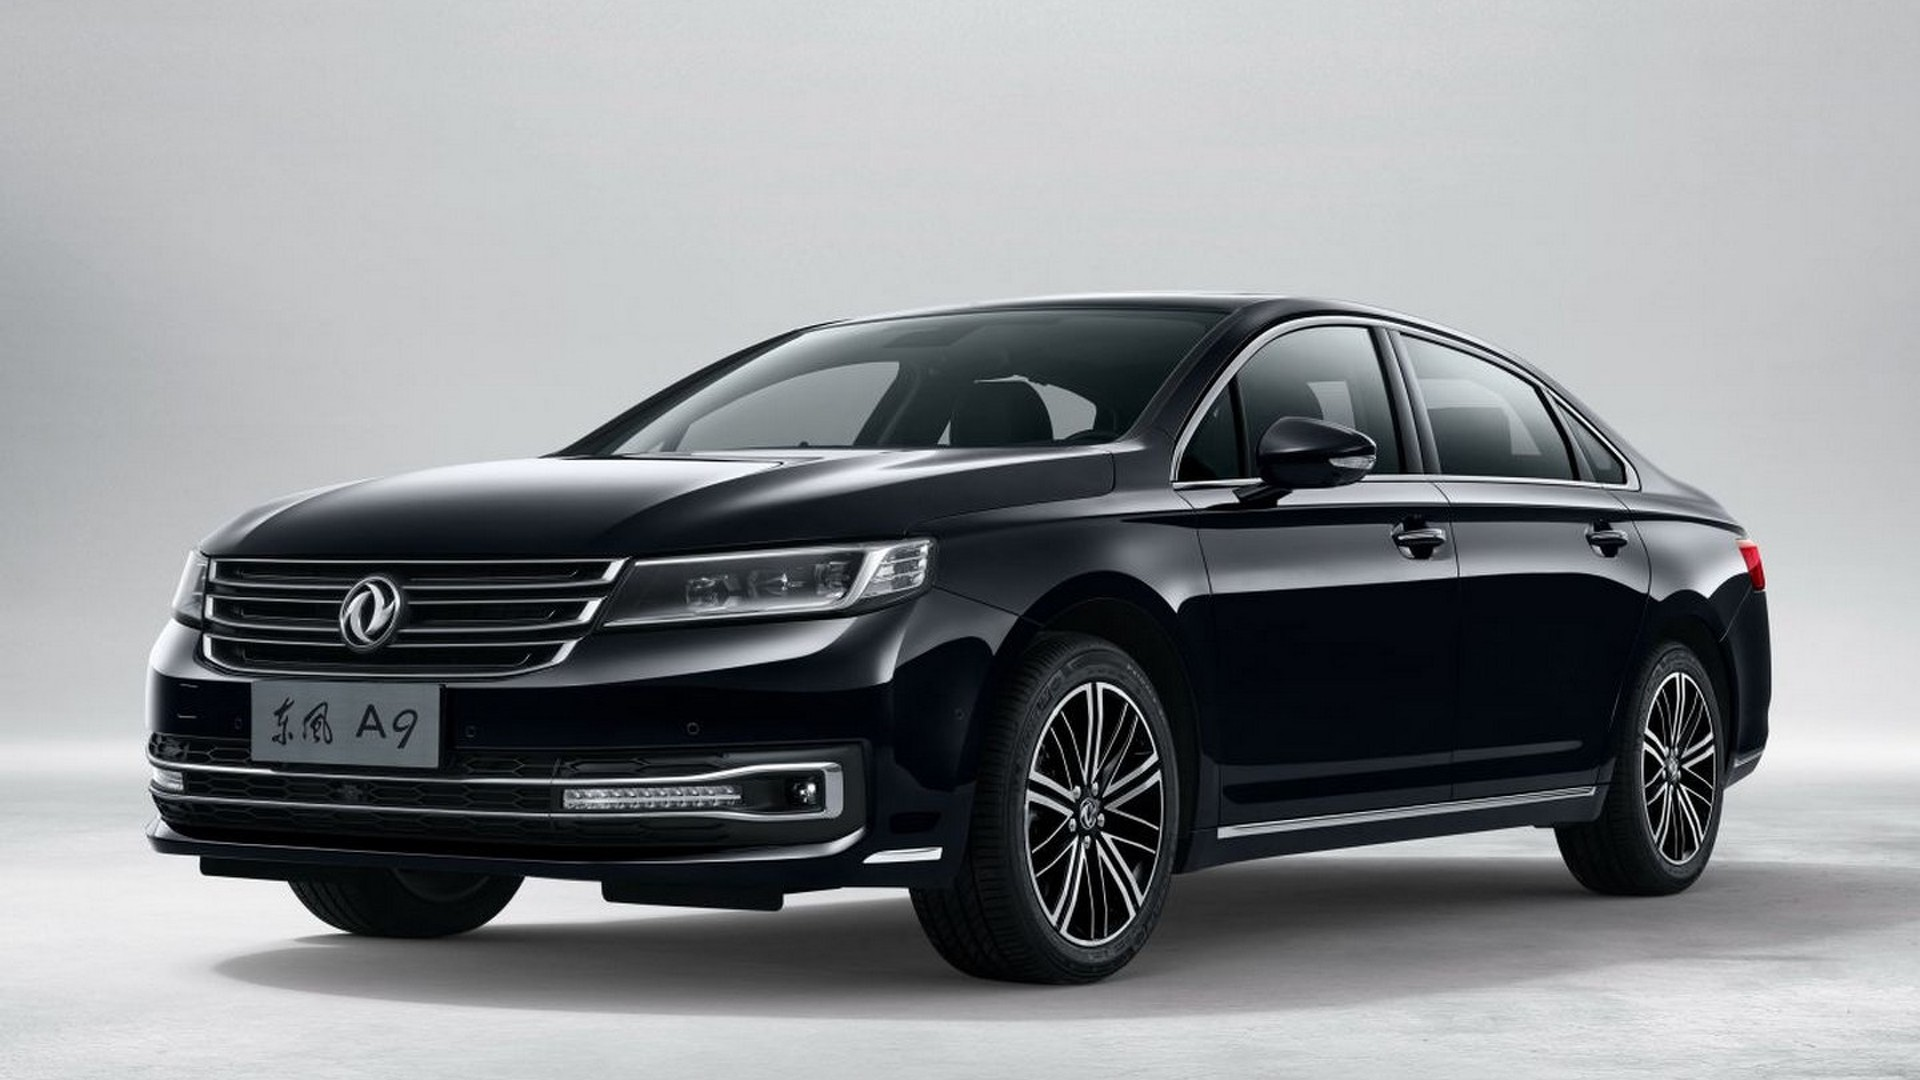 Citroën C5-based Aeolus A9 is Dongfeng's new flagship